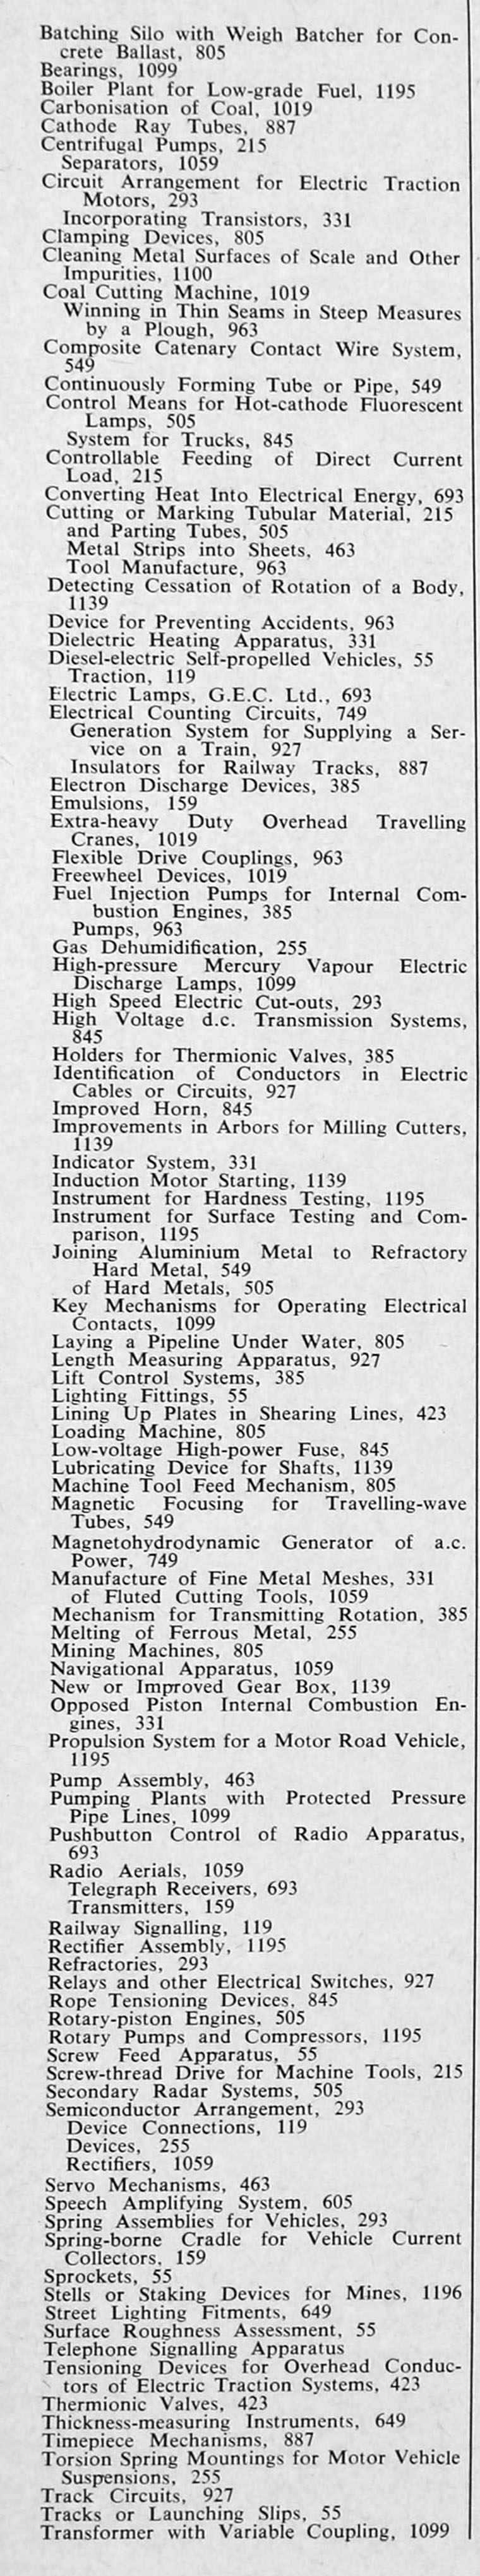 The Engineer 1963 Jan-Jun: Index: Sections 2 and 3